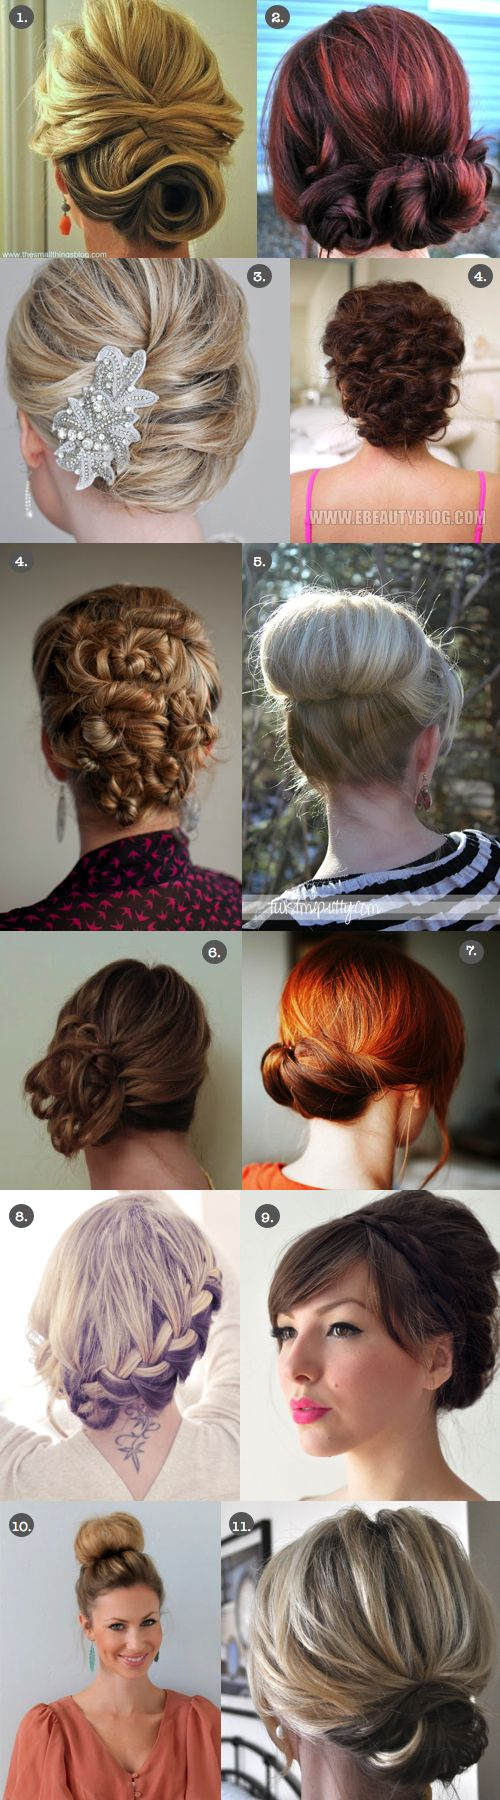 1093 best hair styles for long hair images on pinterest hairstyle 12 diy prom or wedding up dos the frugal female hairideazhairideaz solutioingenieria Image collections